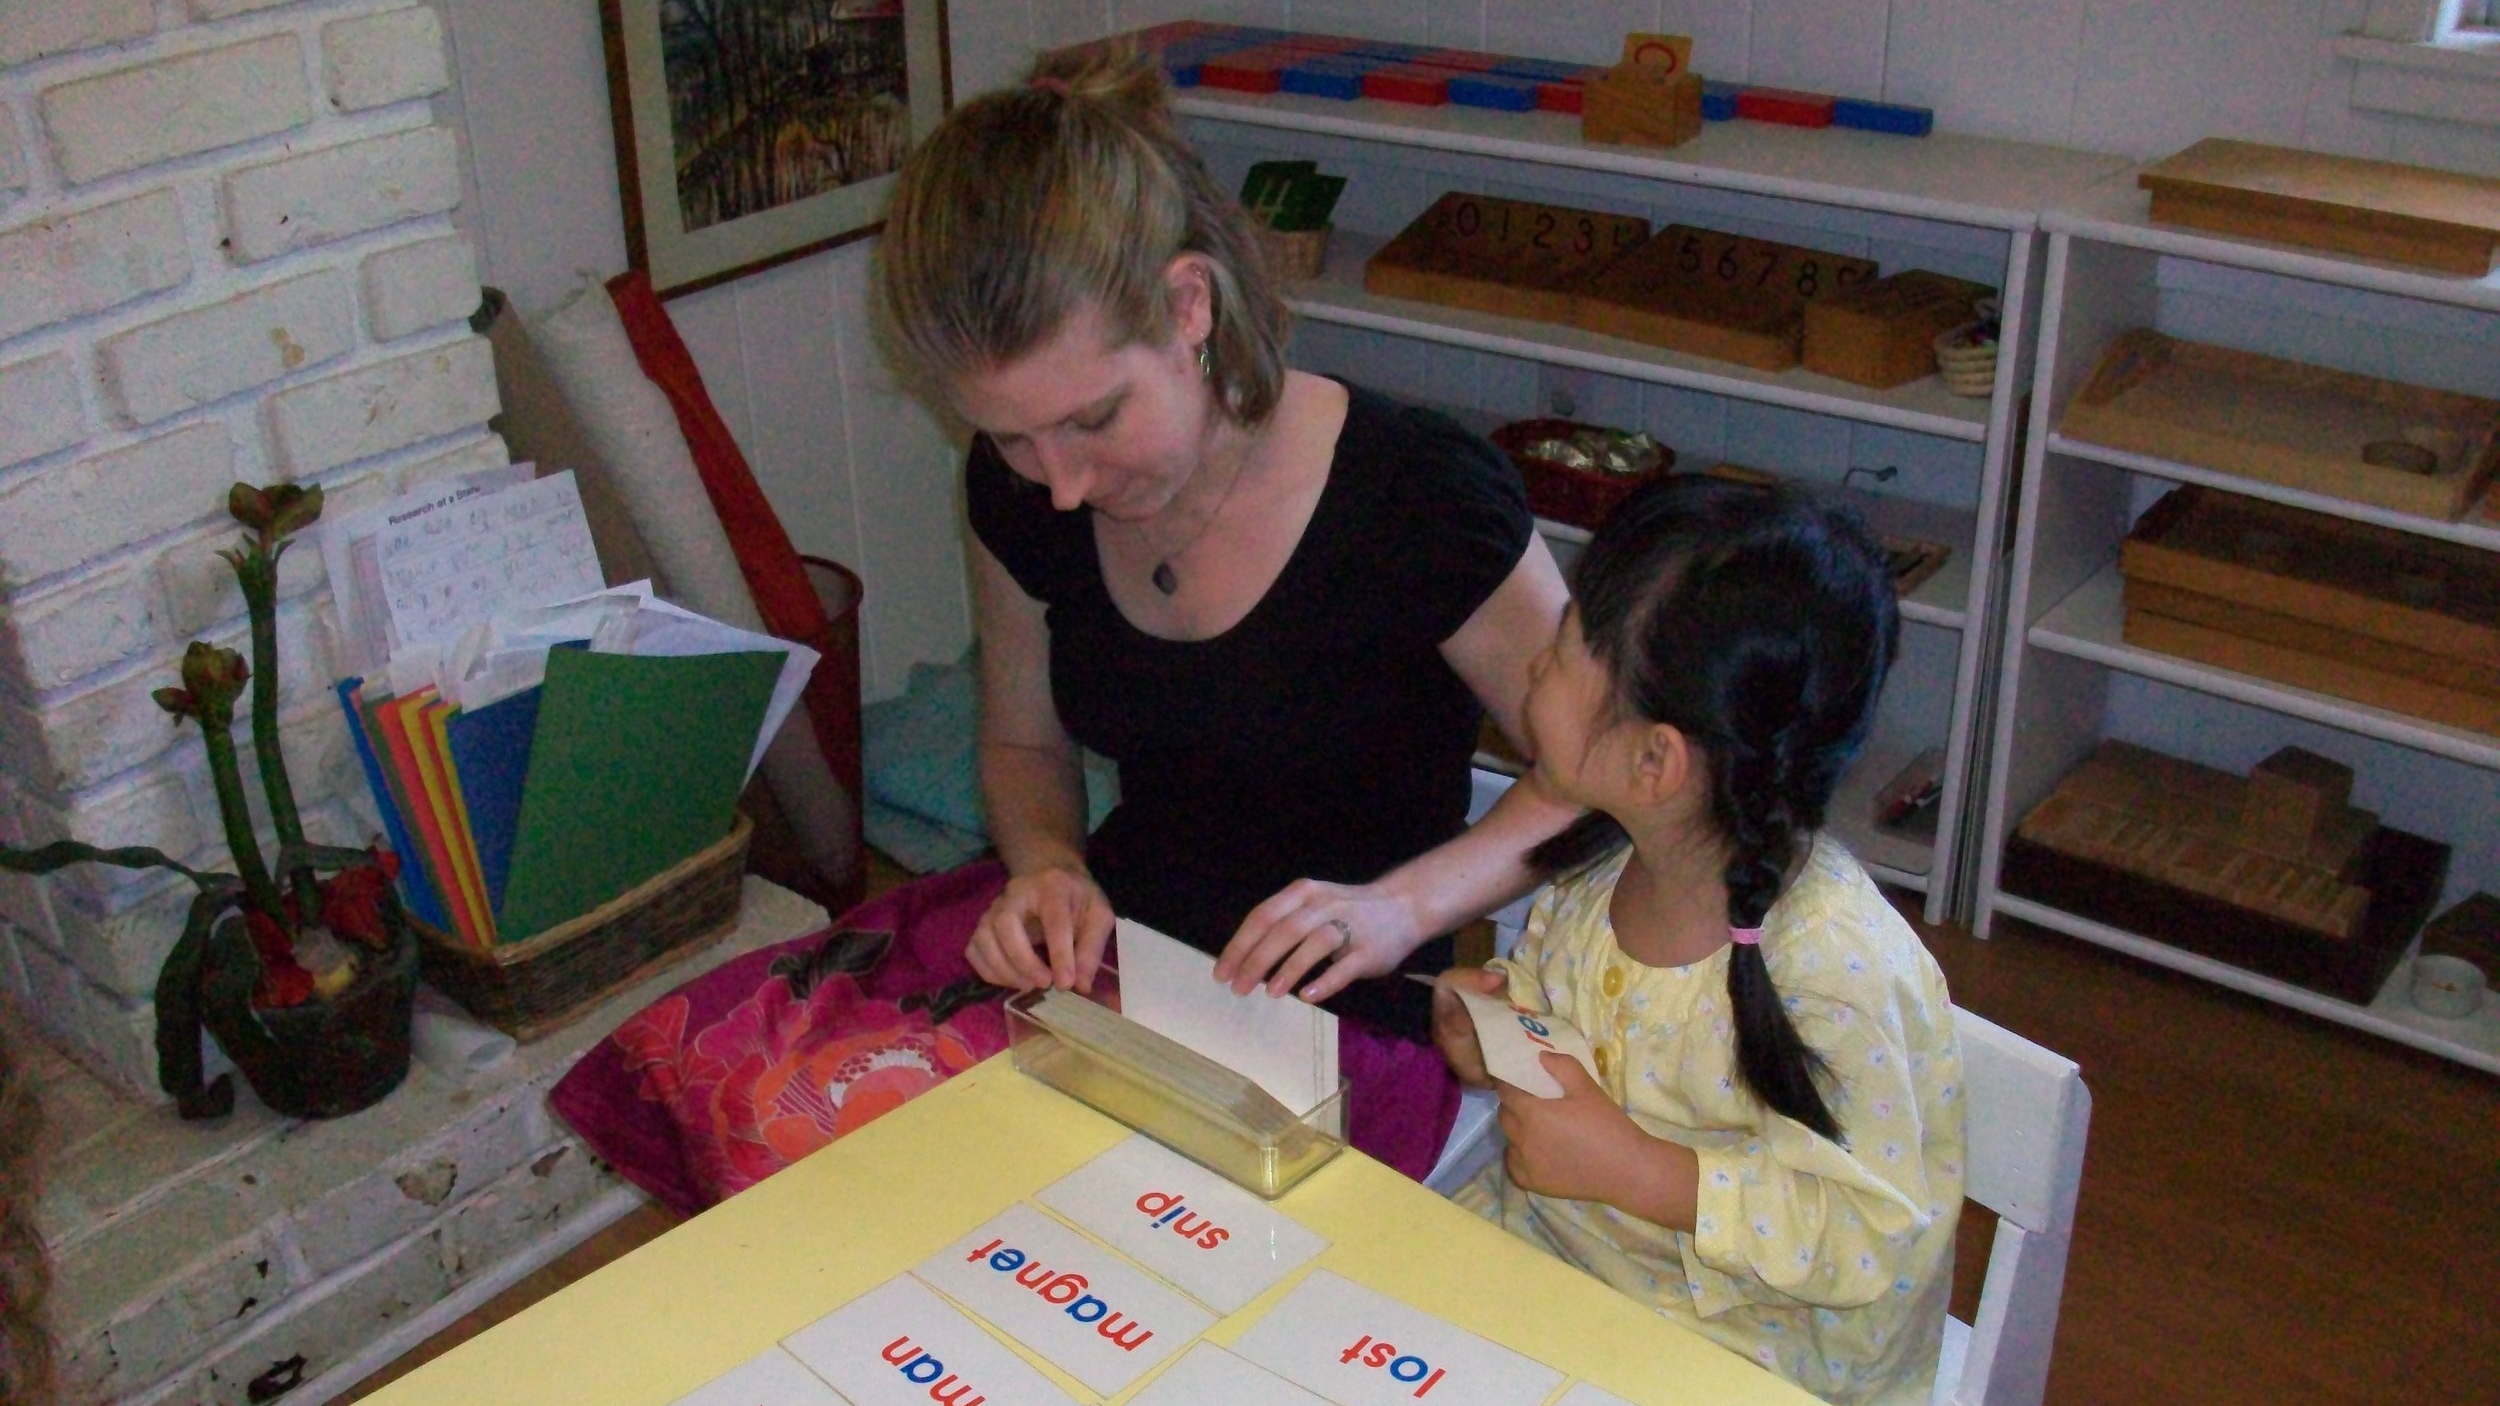 Leanne Gray - I have over 10 years experience teaching young children in both traditional classrooms and in a homeschool setting.Combined with my authentic AMI training, I have a deep knowledge of the Montessori curriculum, methodology, and practical application with thousands of children.